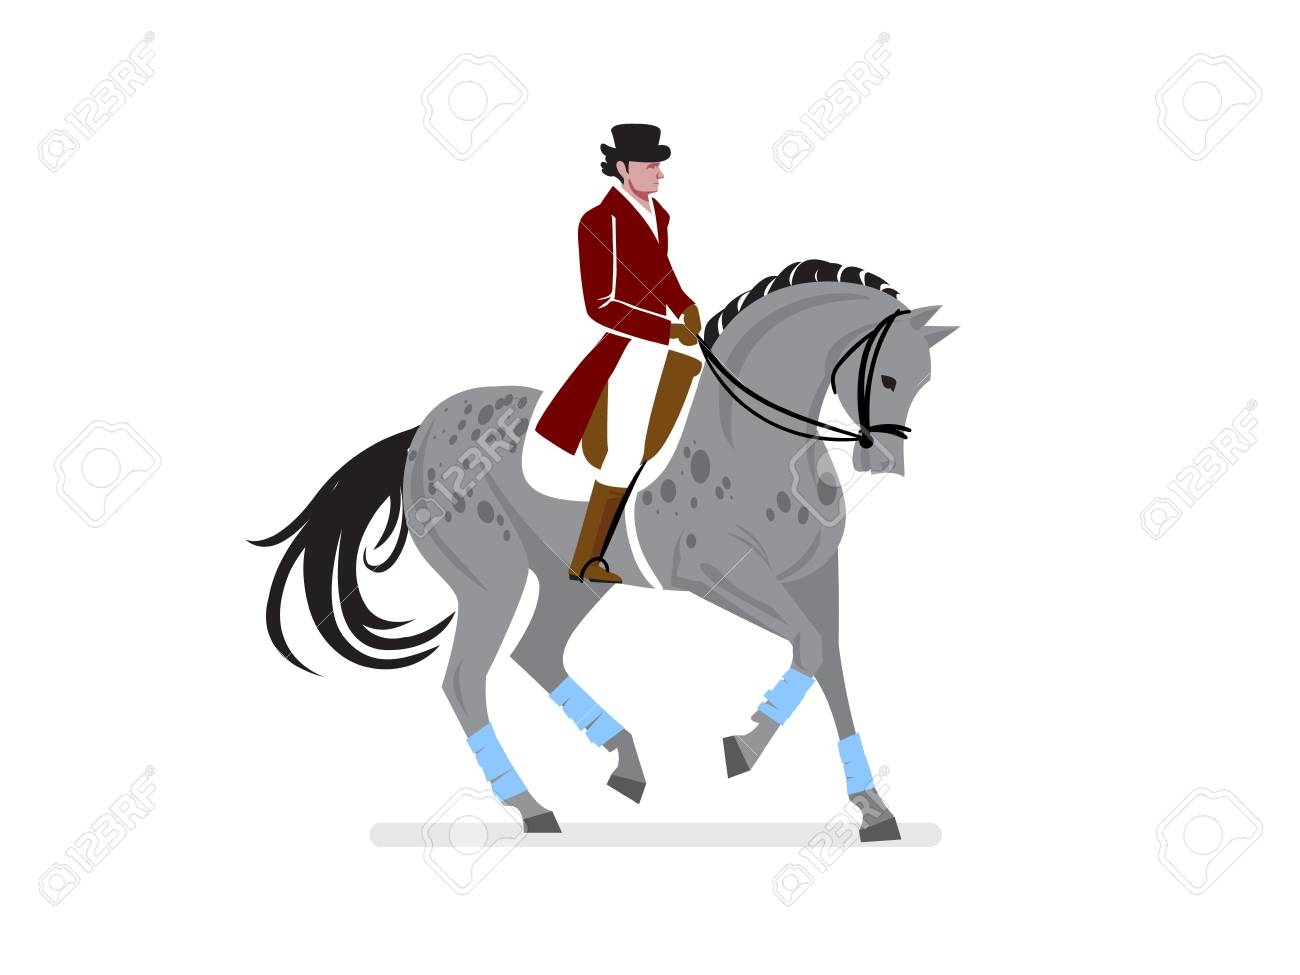 Horse Ride Competition Poster Design Vector Illustration Royalty Free Cliparts Vectors And Stock Illustration Image 100998240